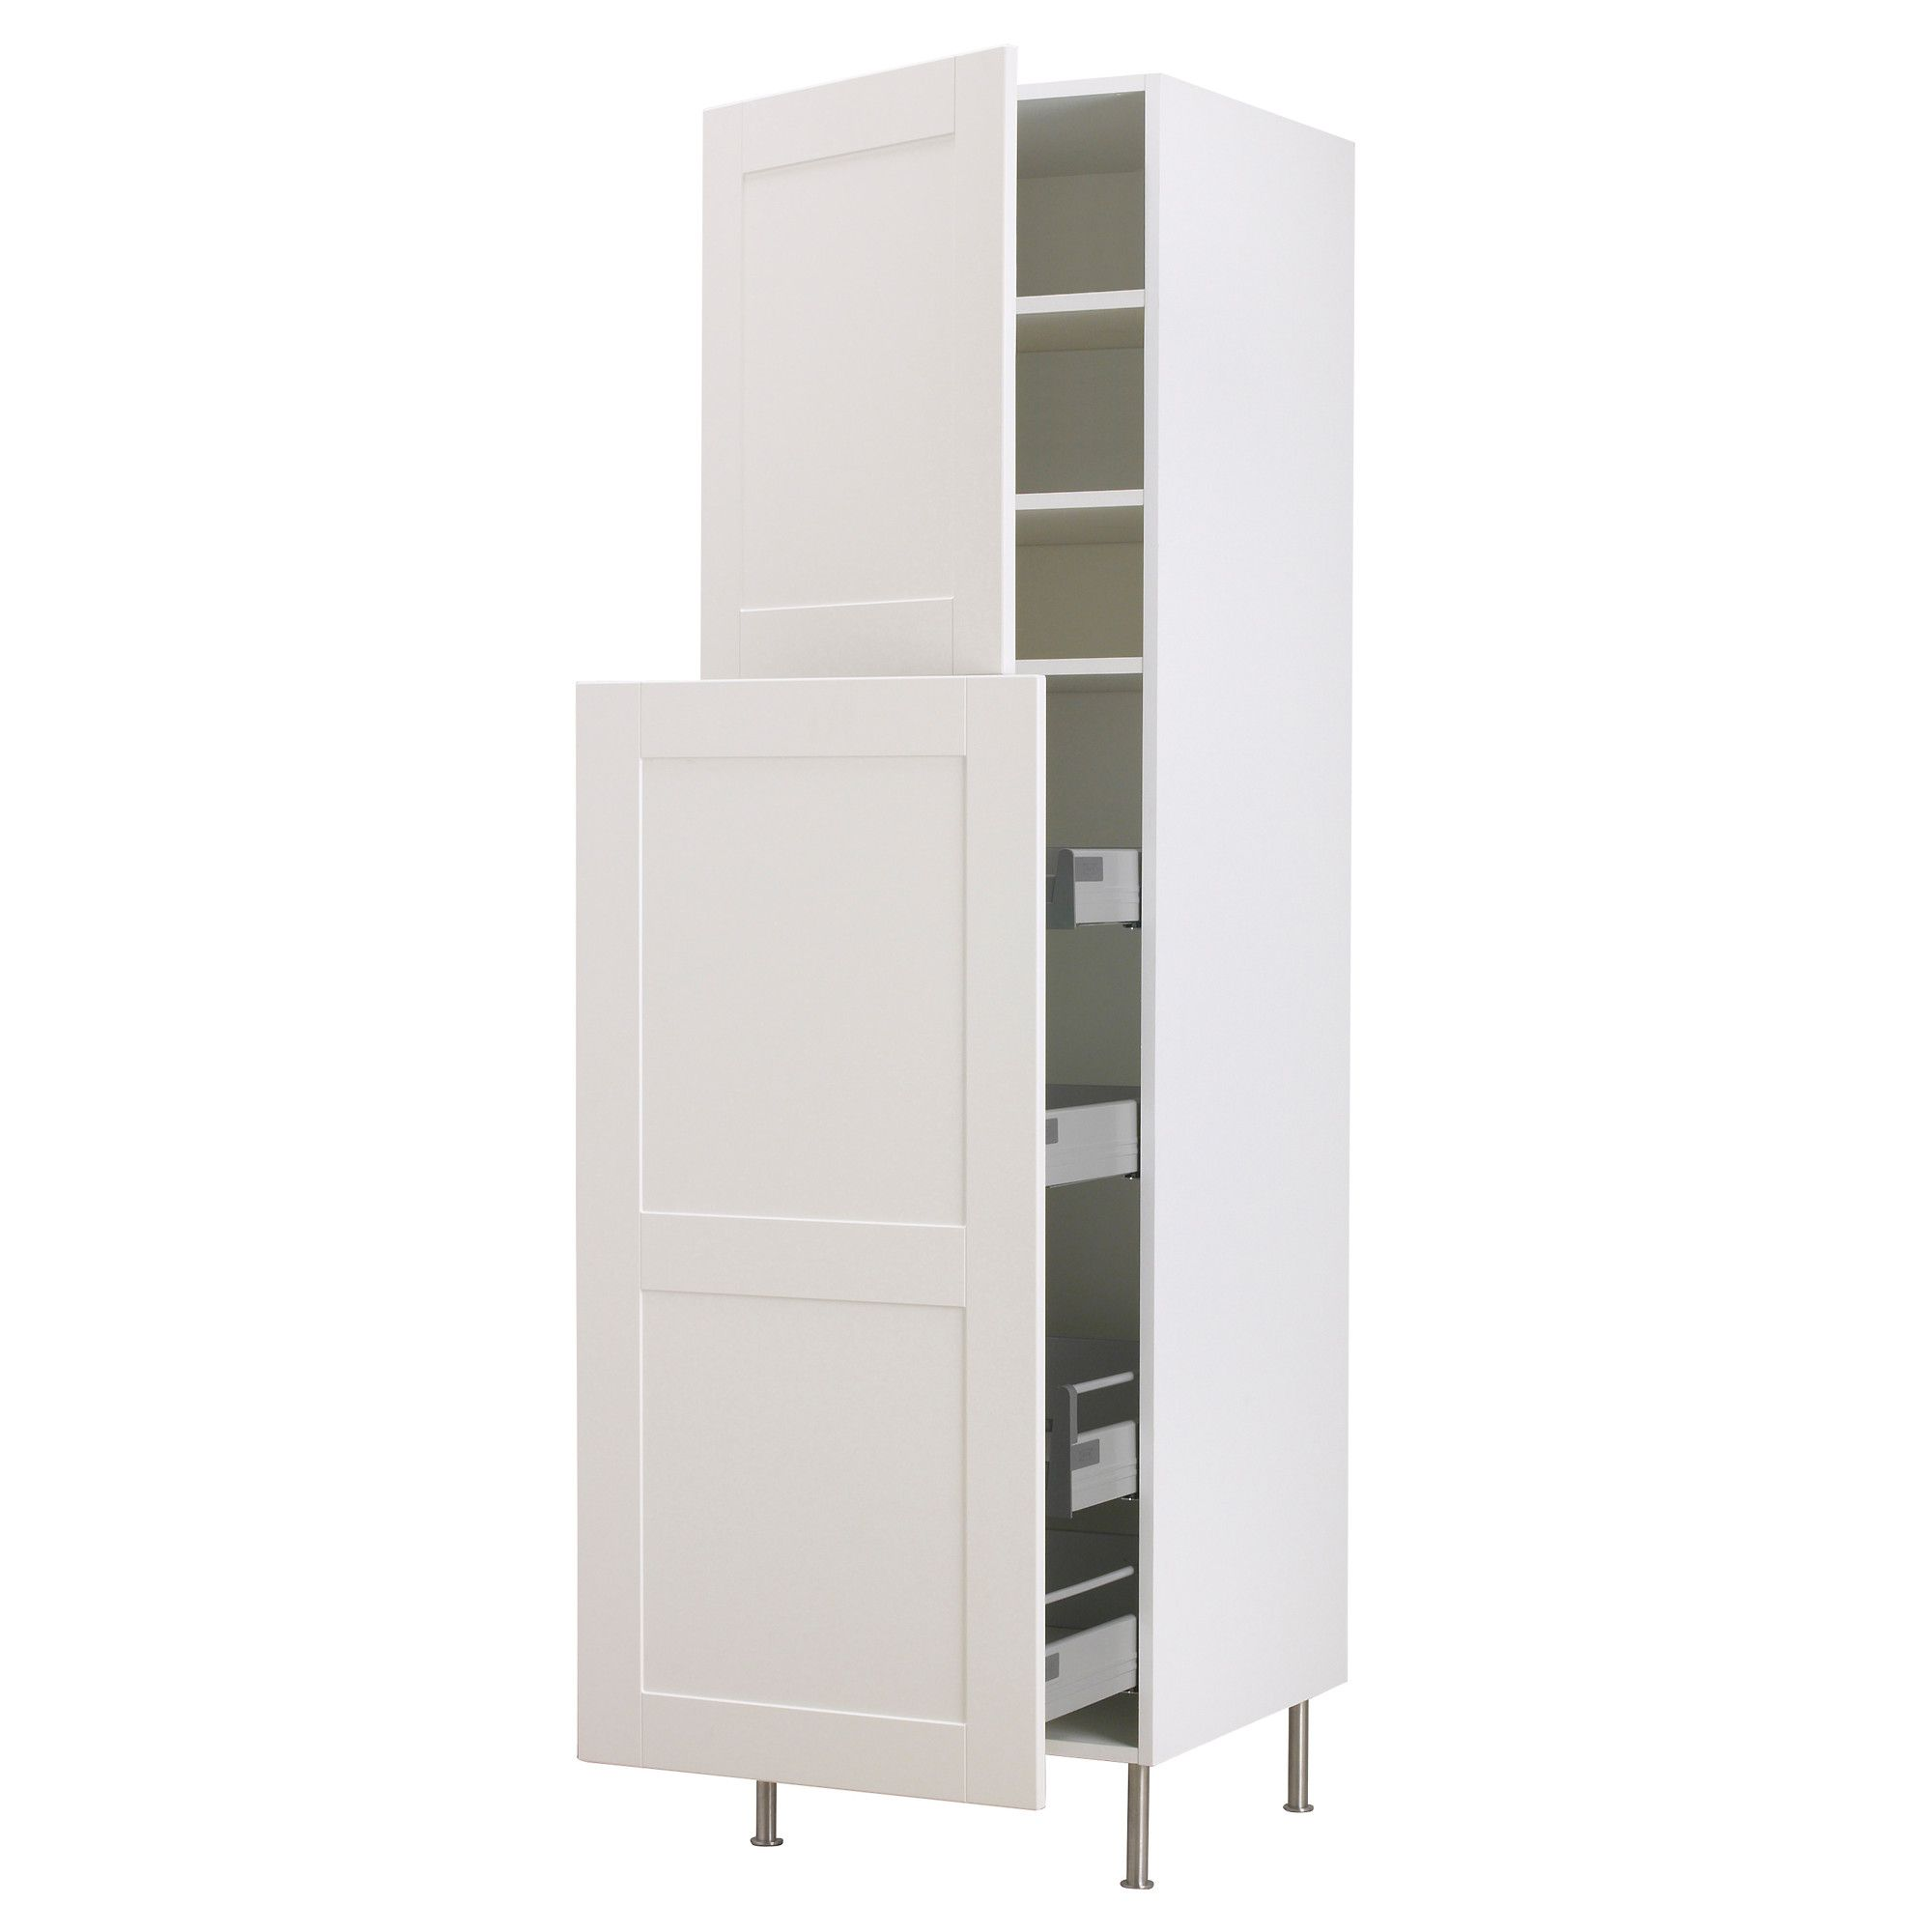 Pull Out Kitchen Shelves Ikea Faktum High Cab W Pull Out Storage 2 Doors 40x211 Cm Ikea